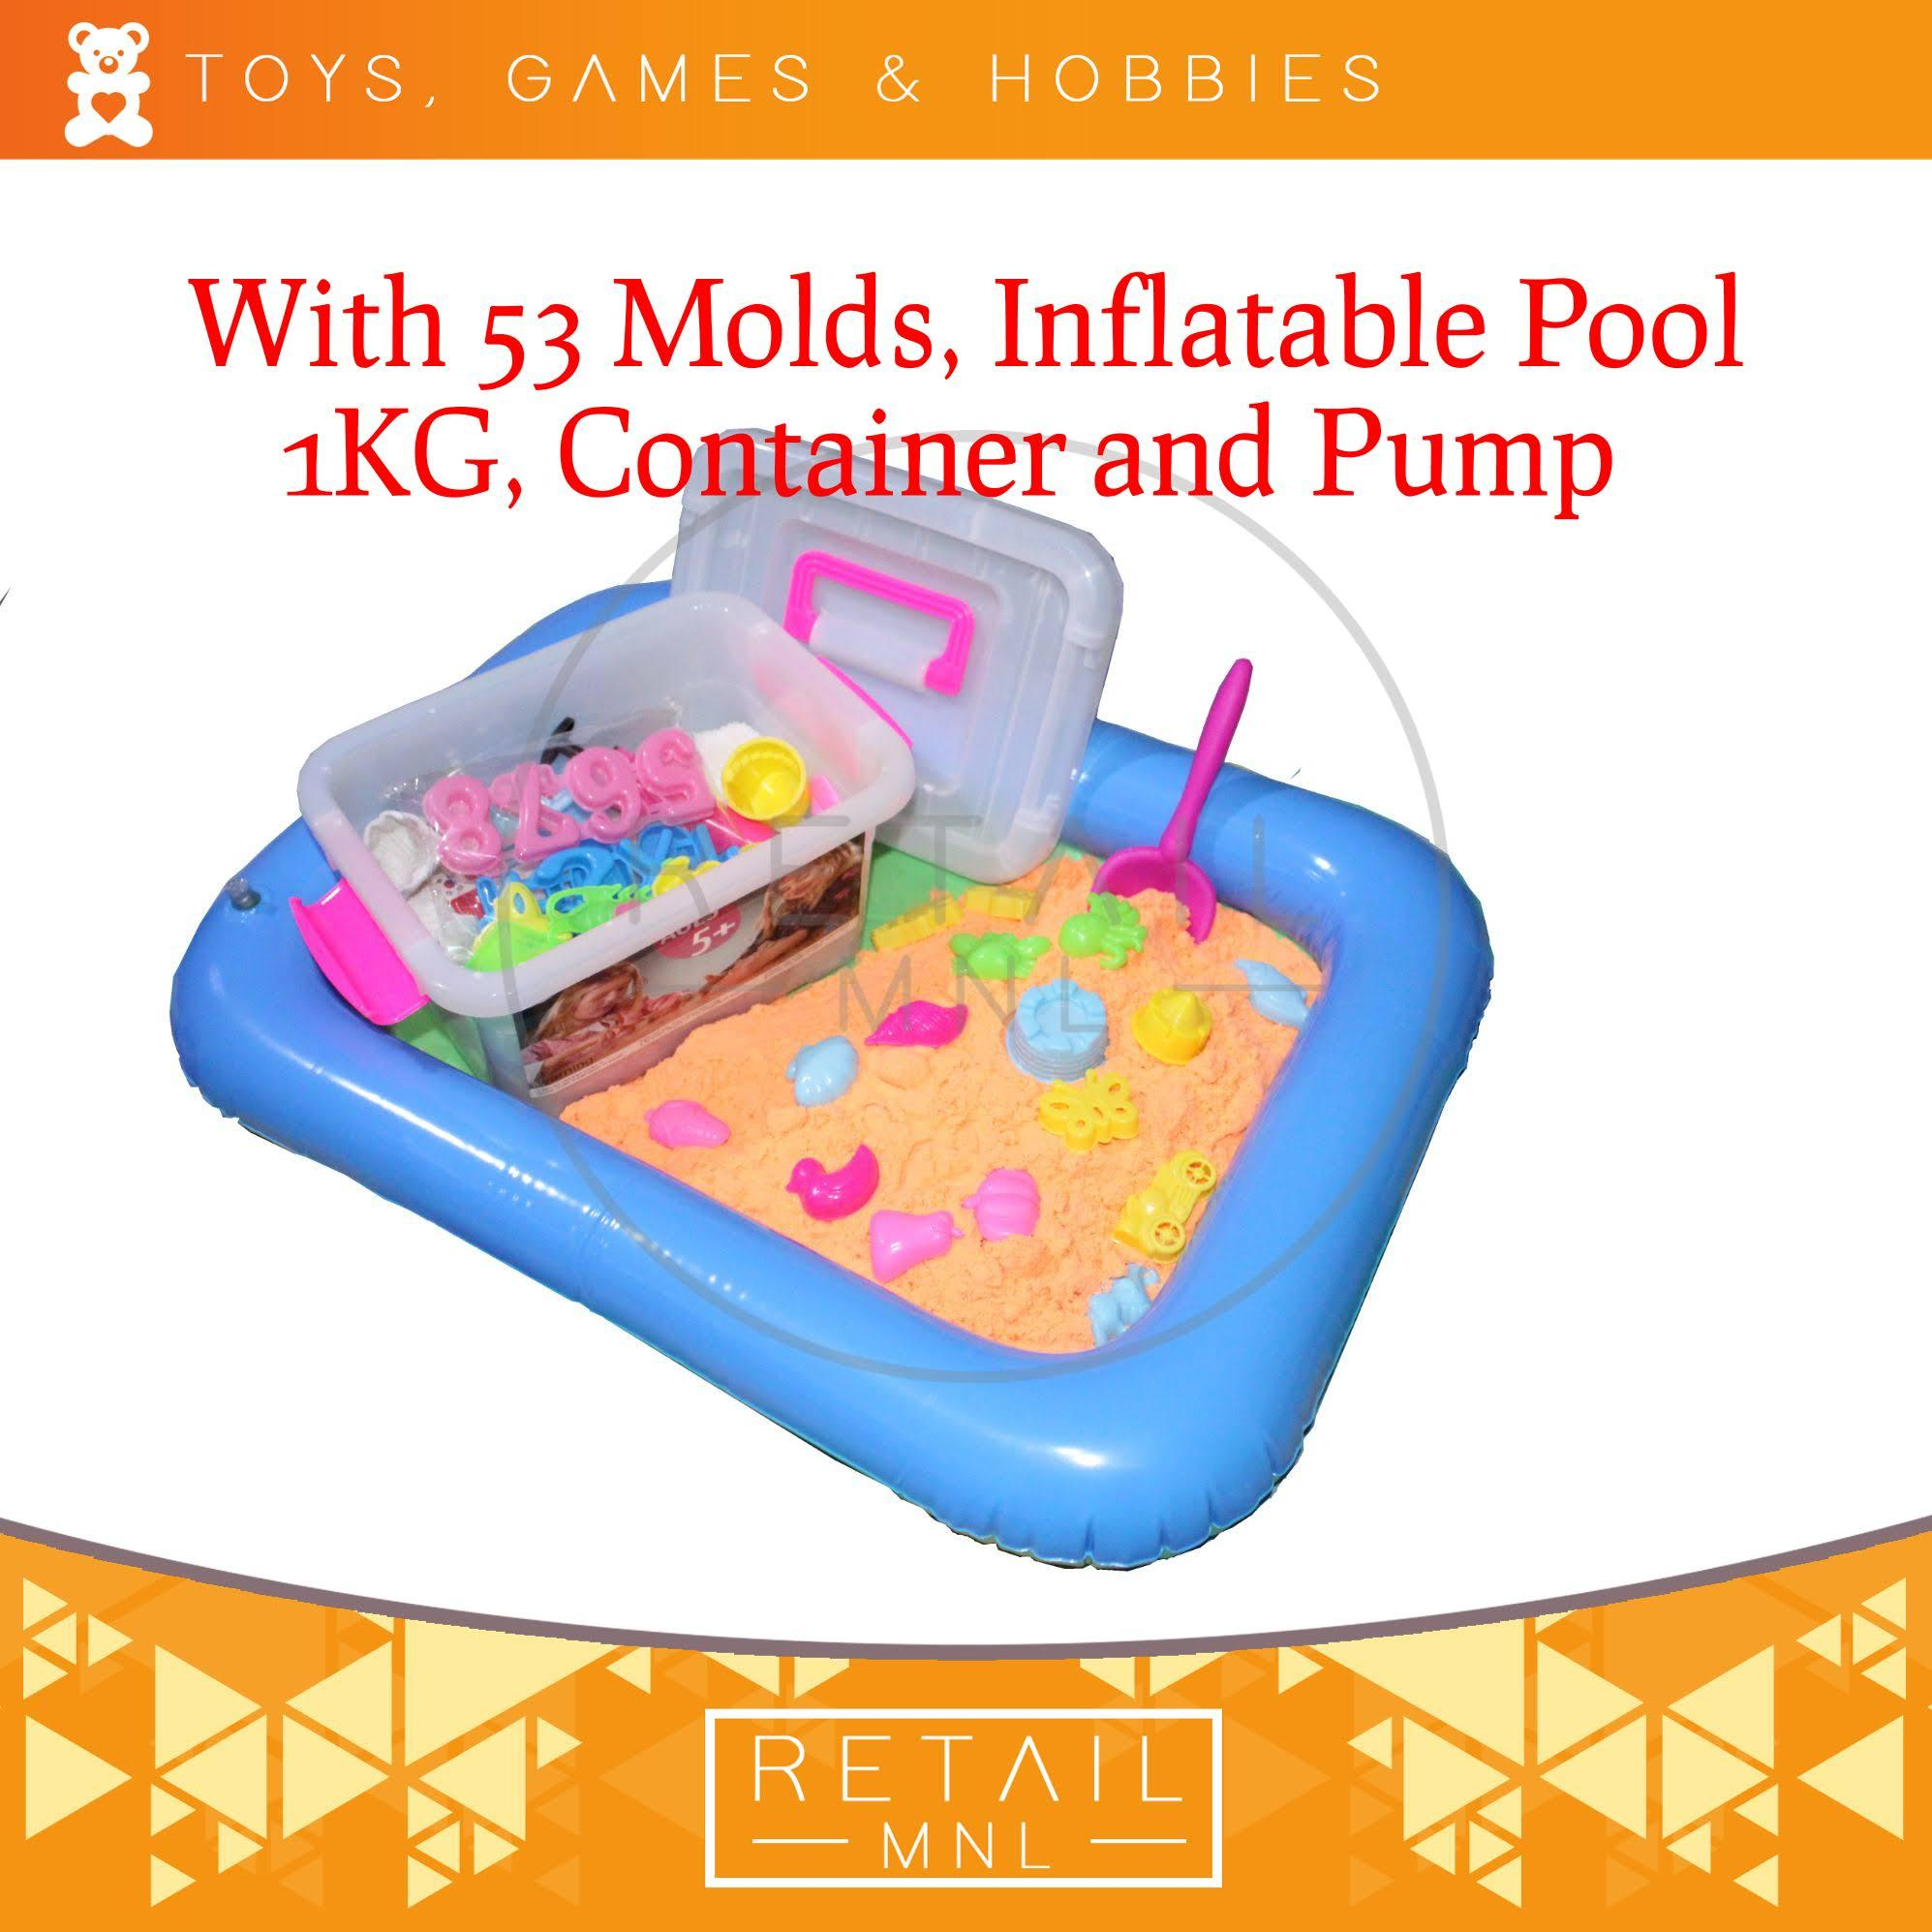 106951ae13 Retailmnl Kinetic Motion Sand Playset with Molds and Inflatable Pool Kids  Toy